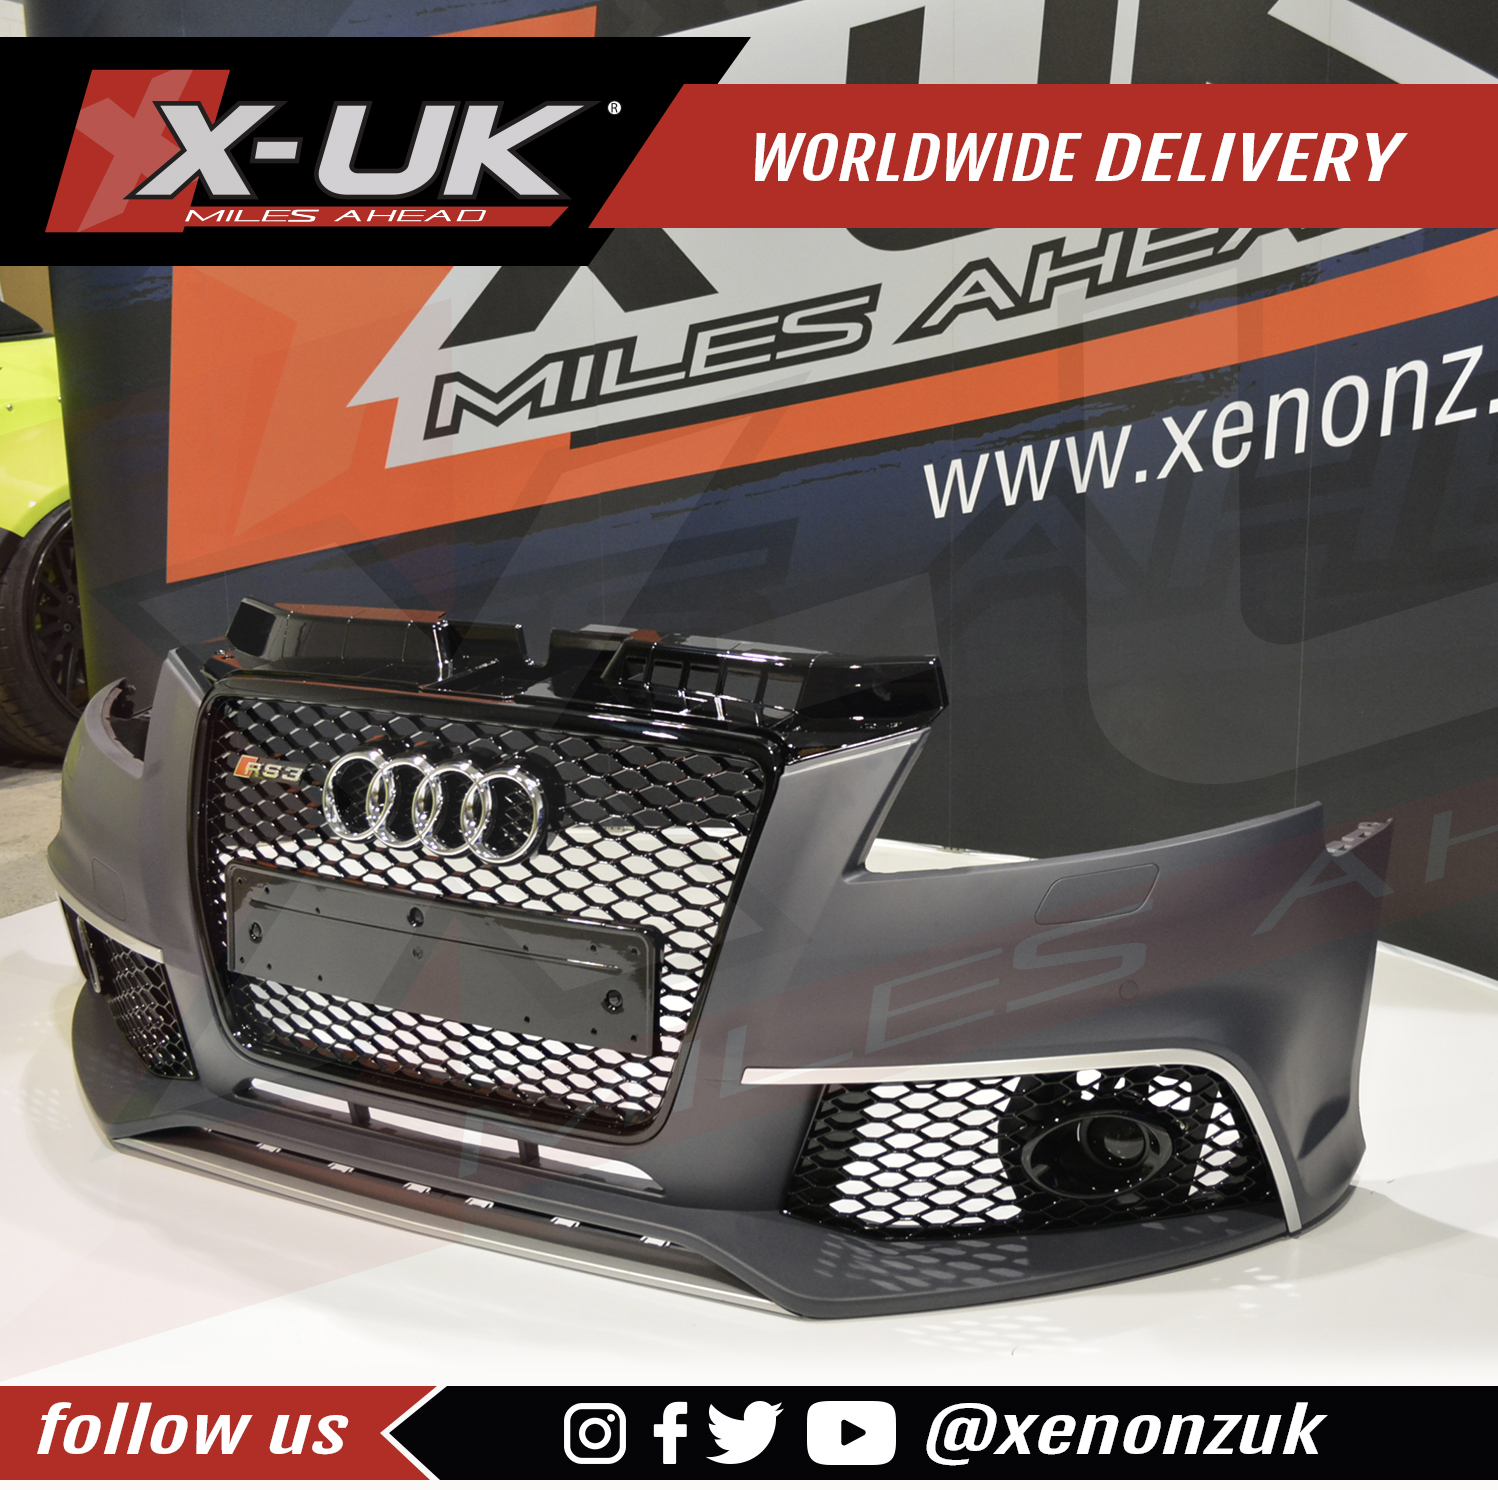 2012 To RS3 Front Bumper Conversion